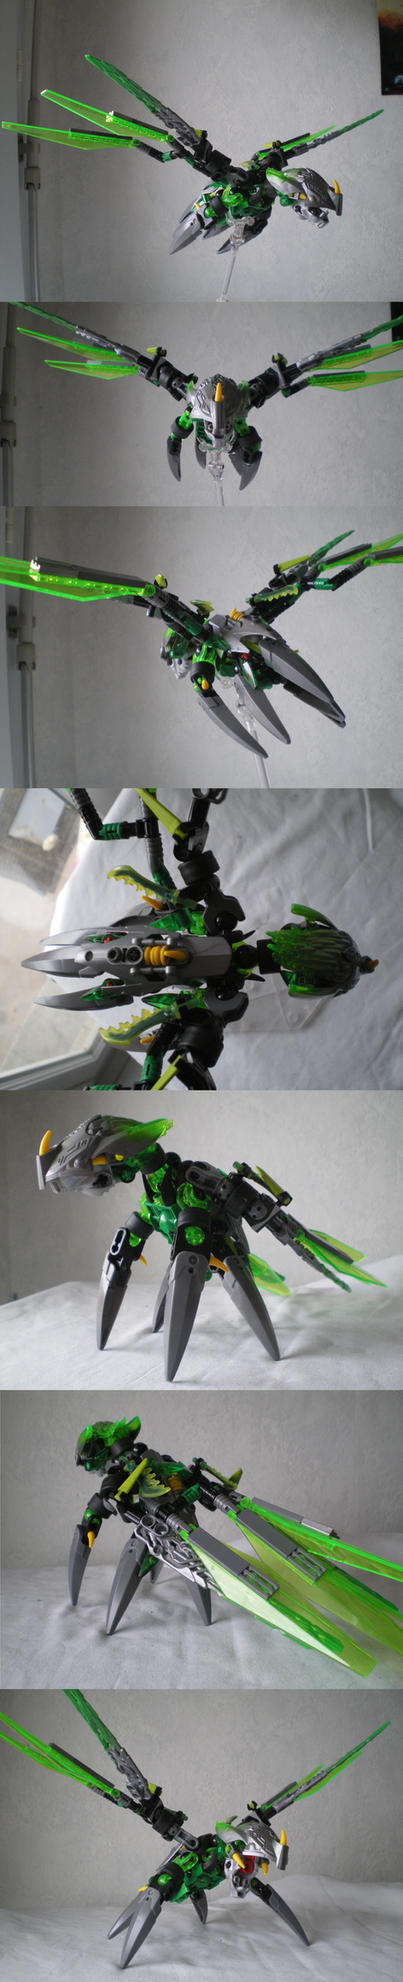 MOC : Uxar, creature of the Jungle by vahki6